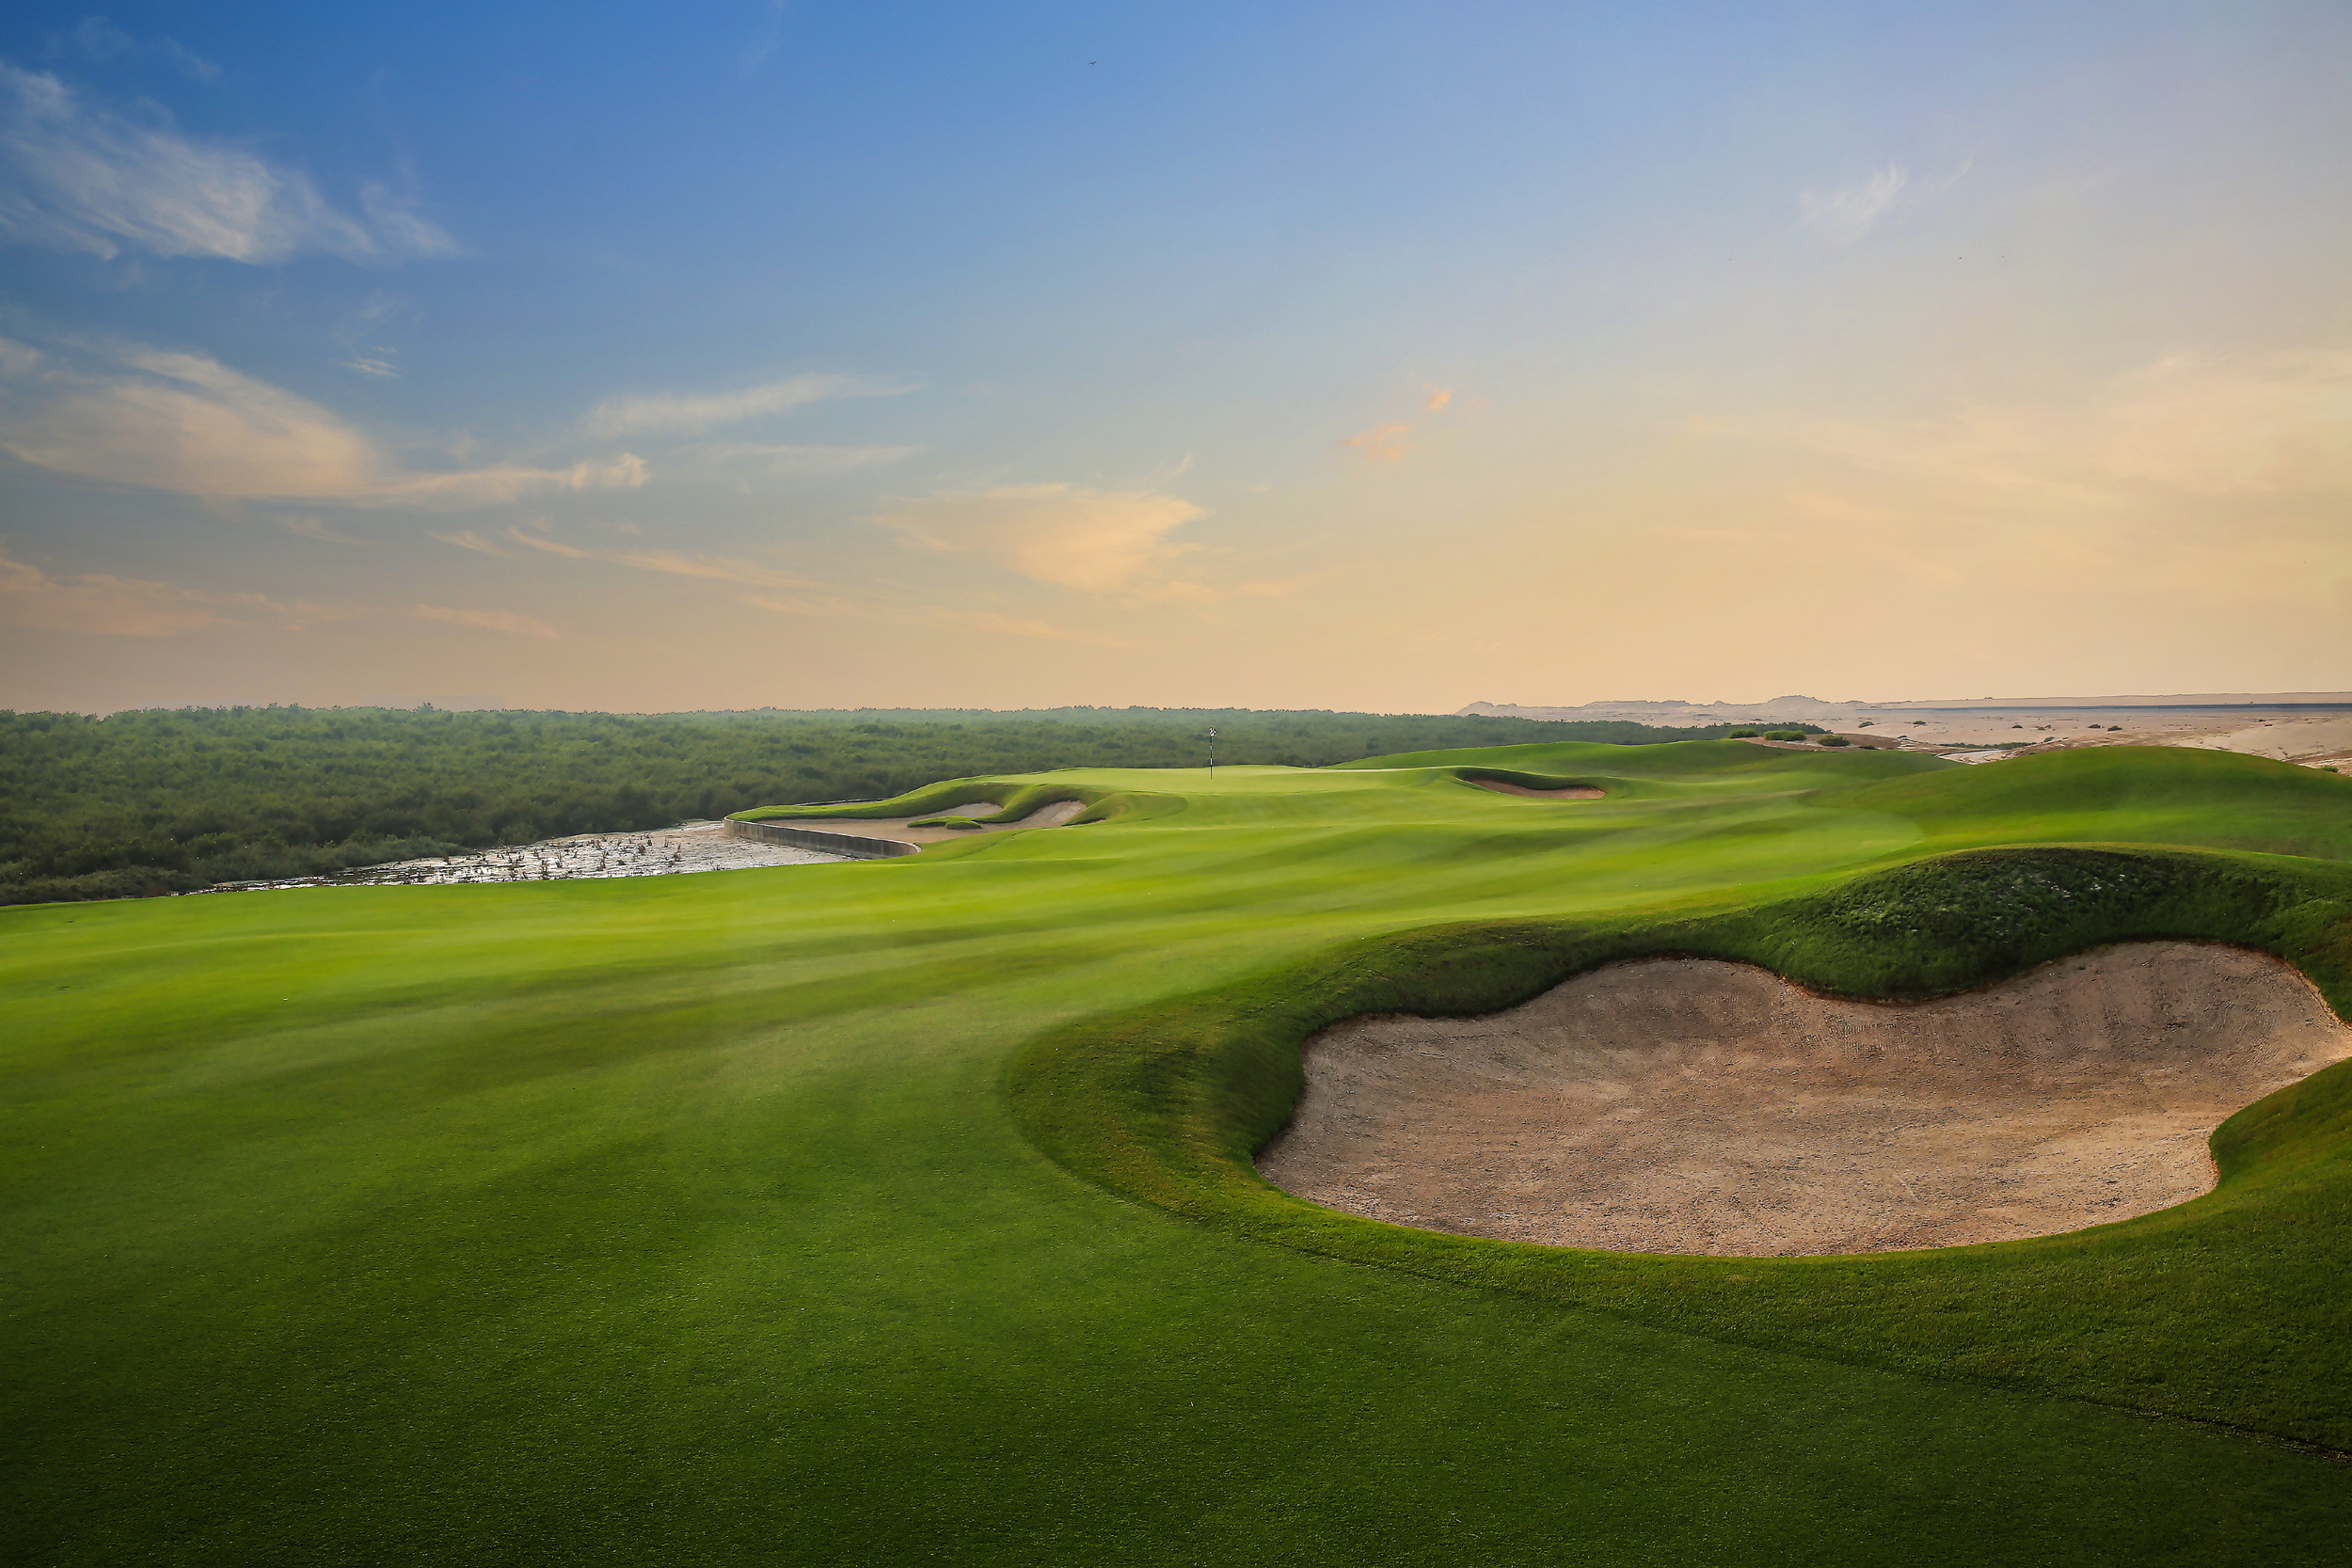 The course is set among native sandy areas and lakes